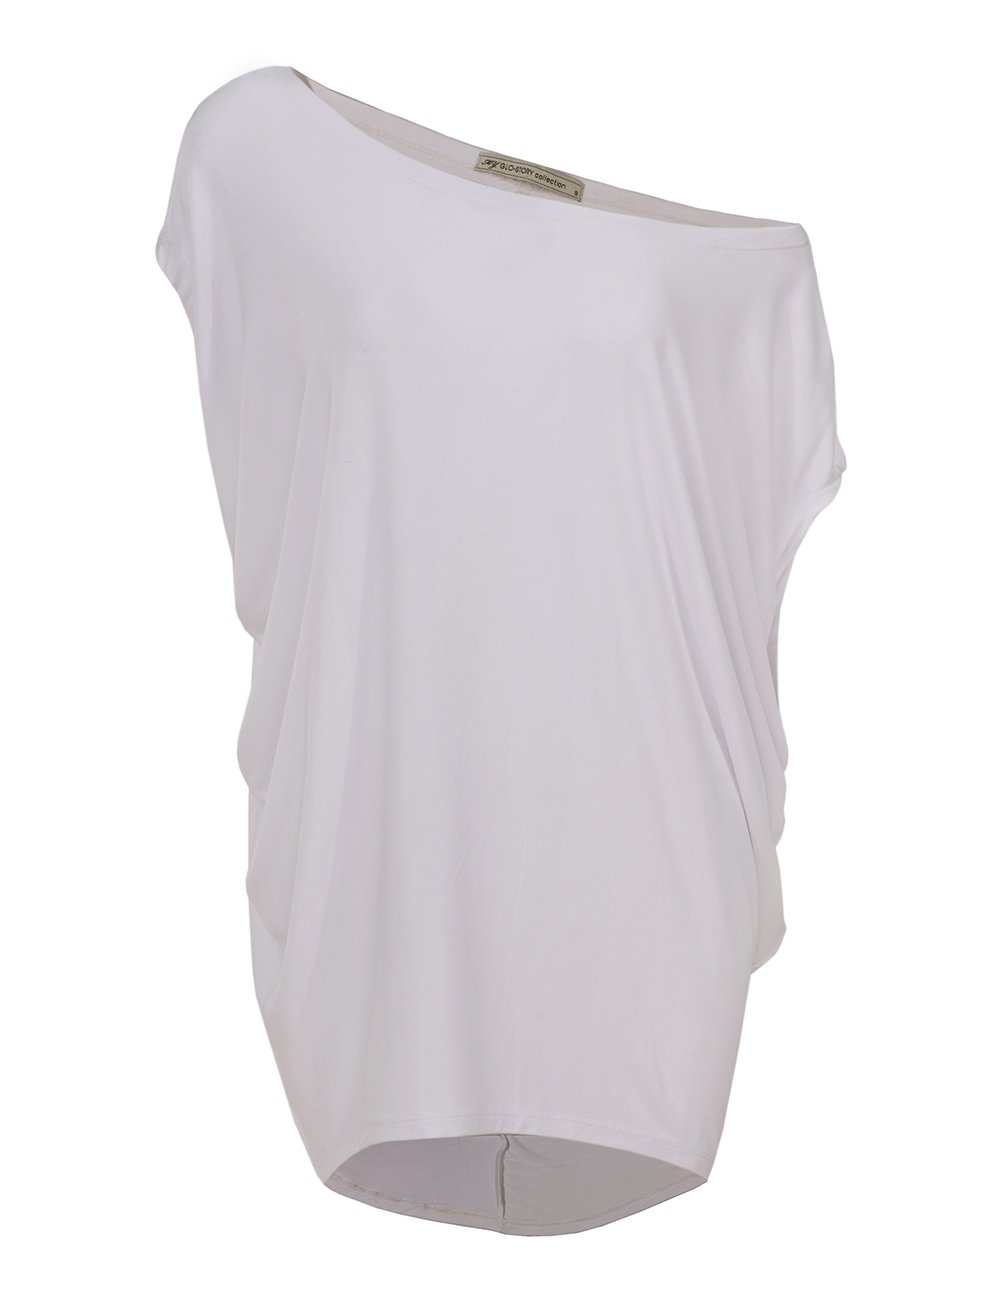 GLOSTORY Womens Casual Summer Off the Shoulder Tee Shirts Blouse Tops 1667 (XL, New White)